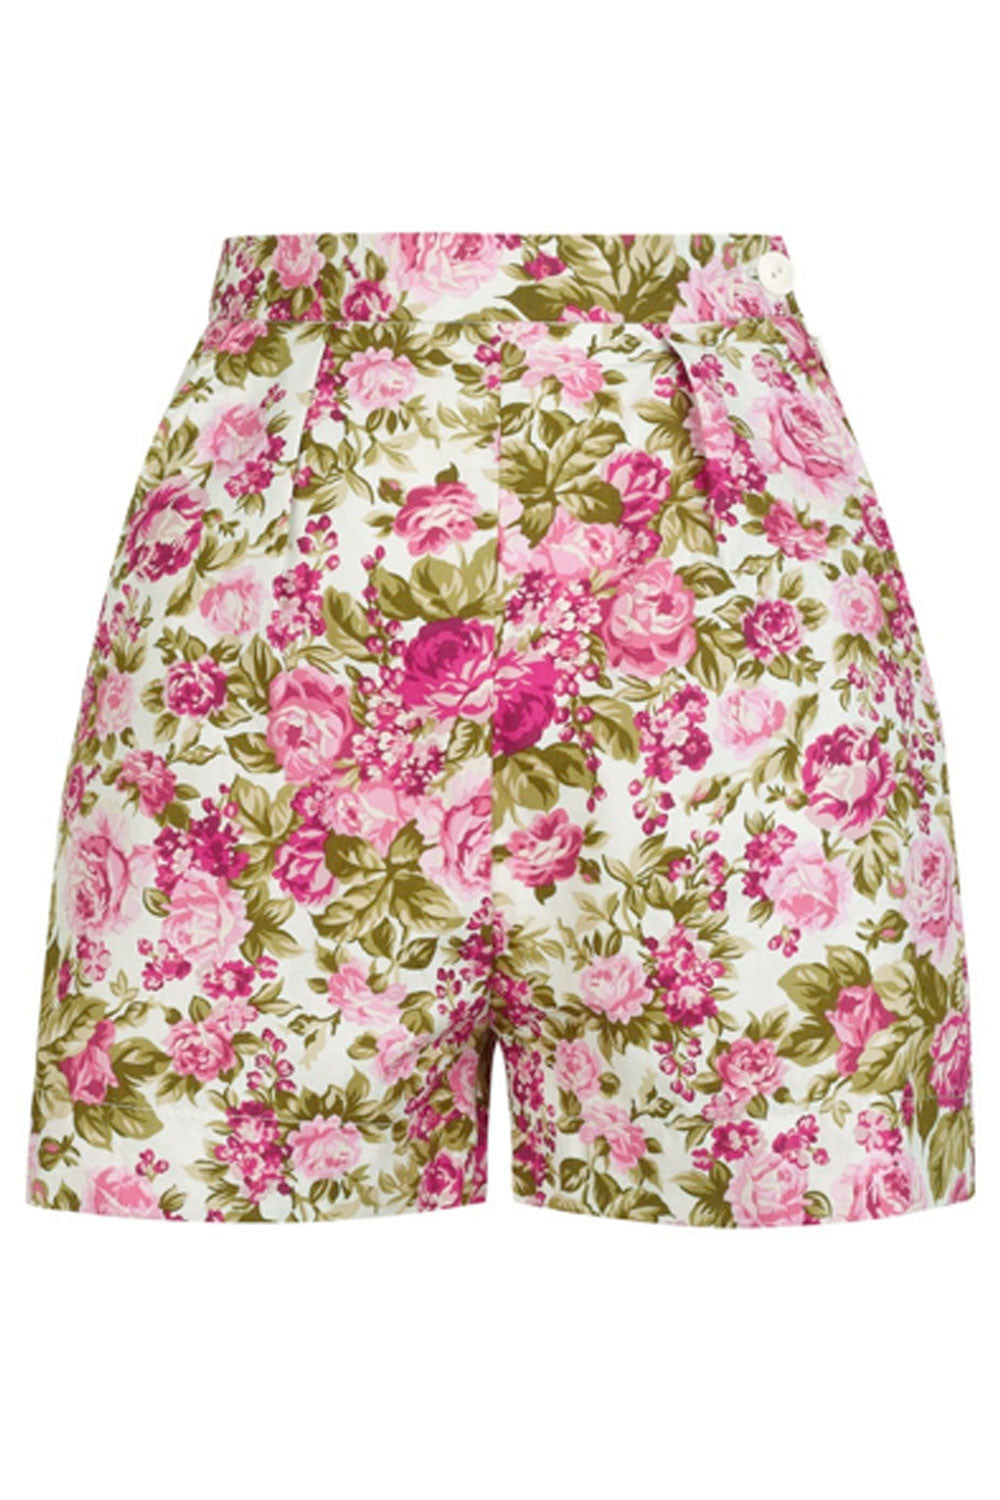 The Printed Shorts - Pink Floral